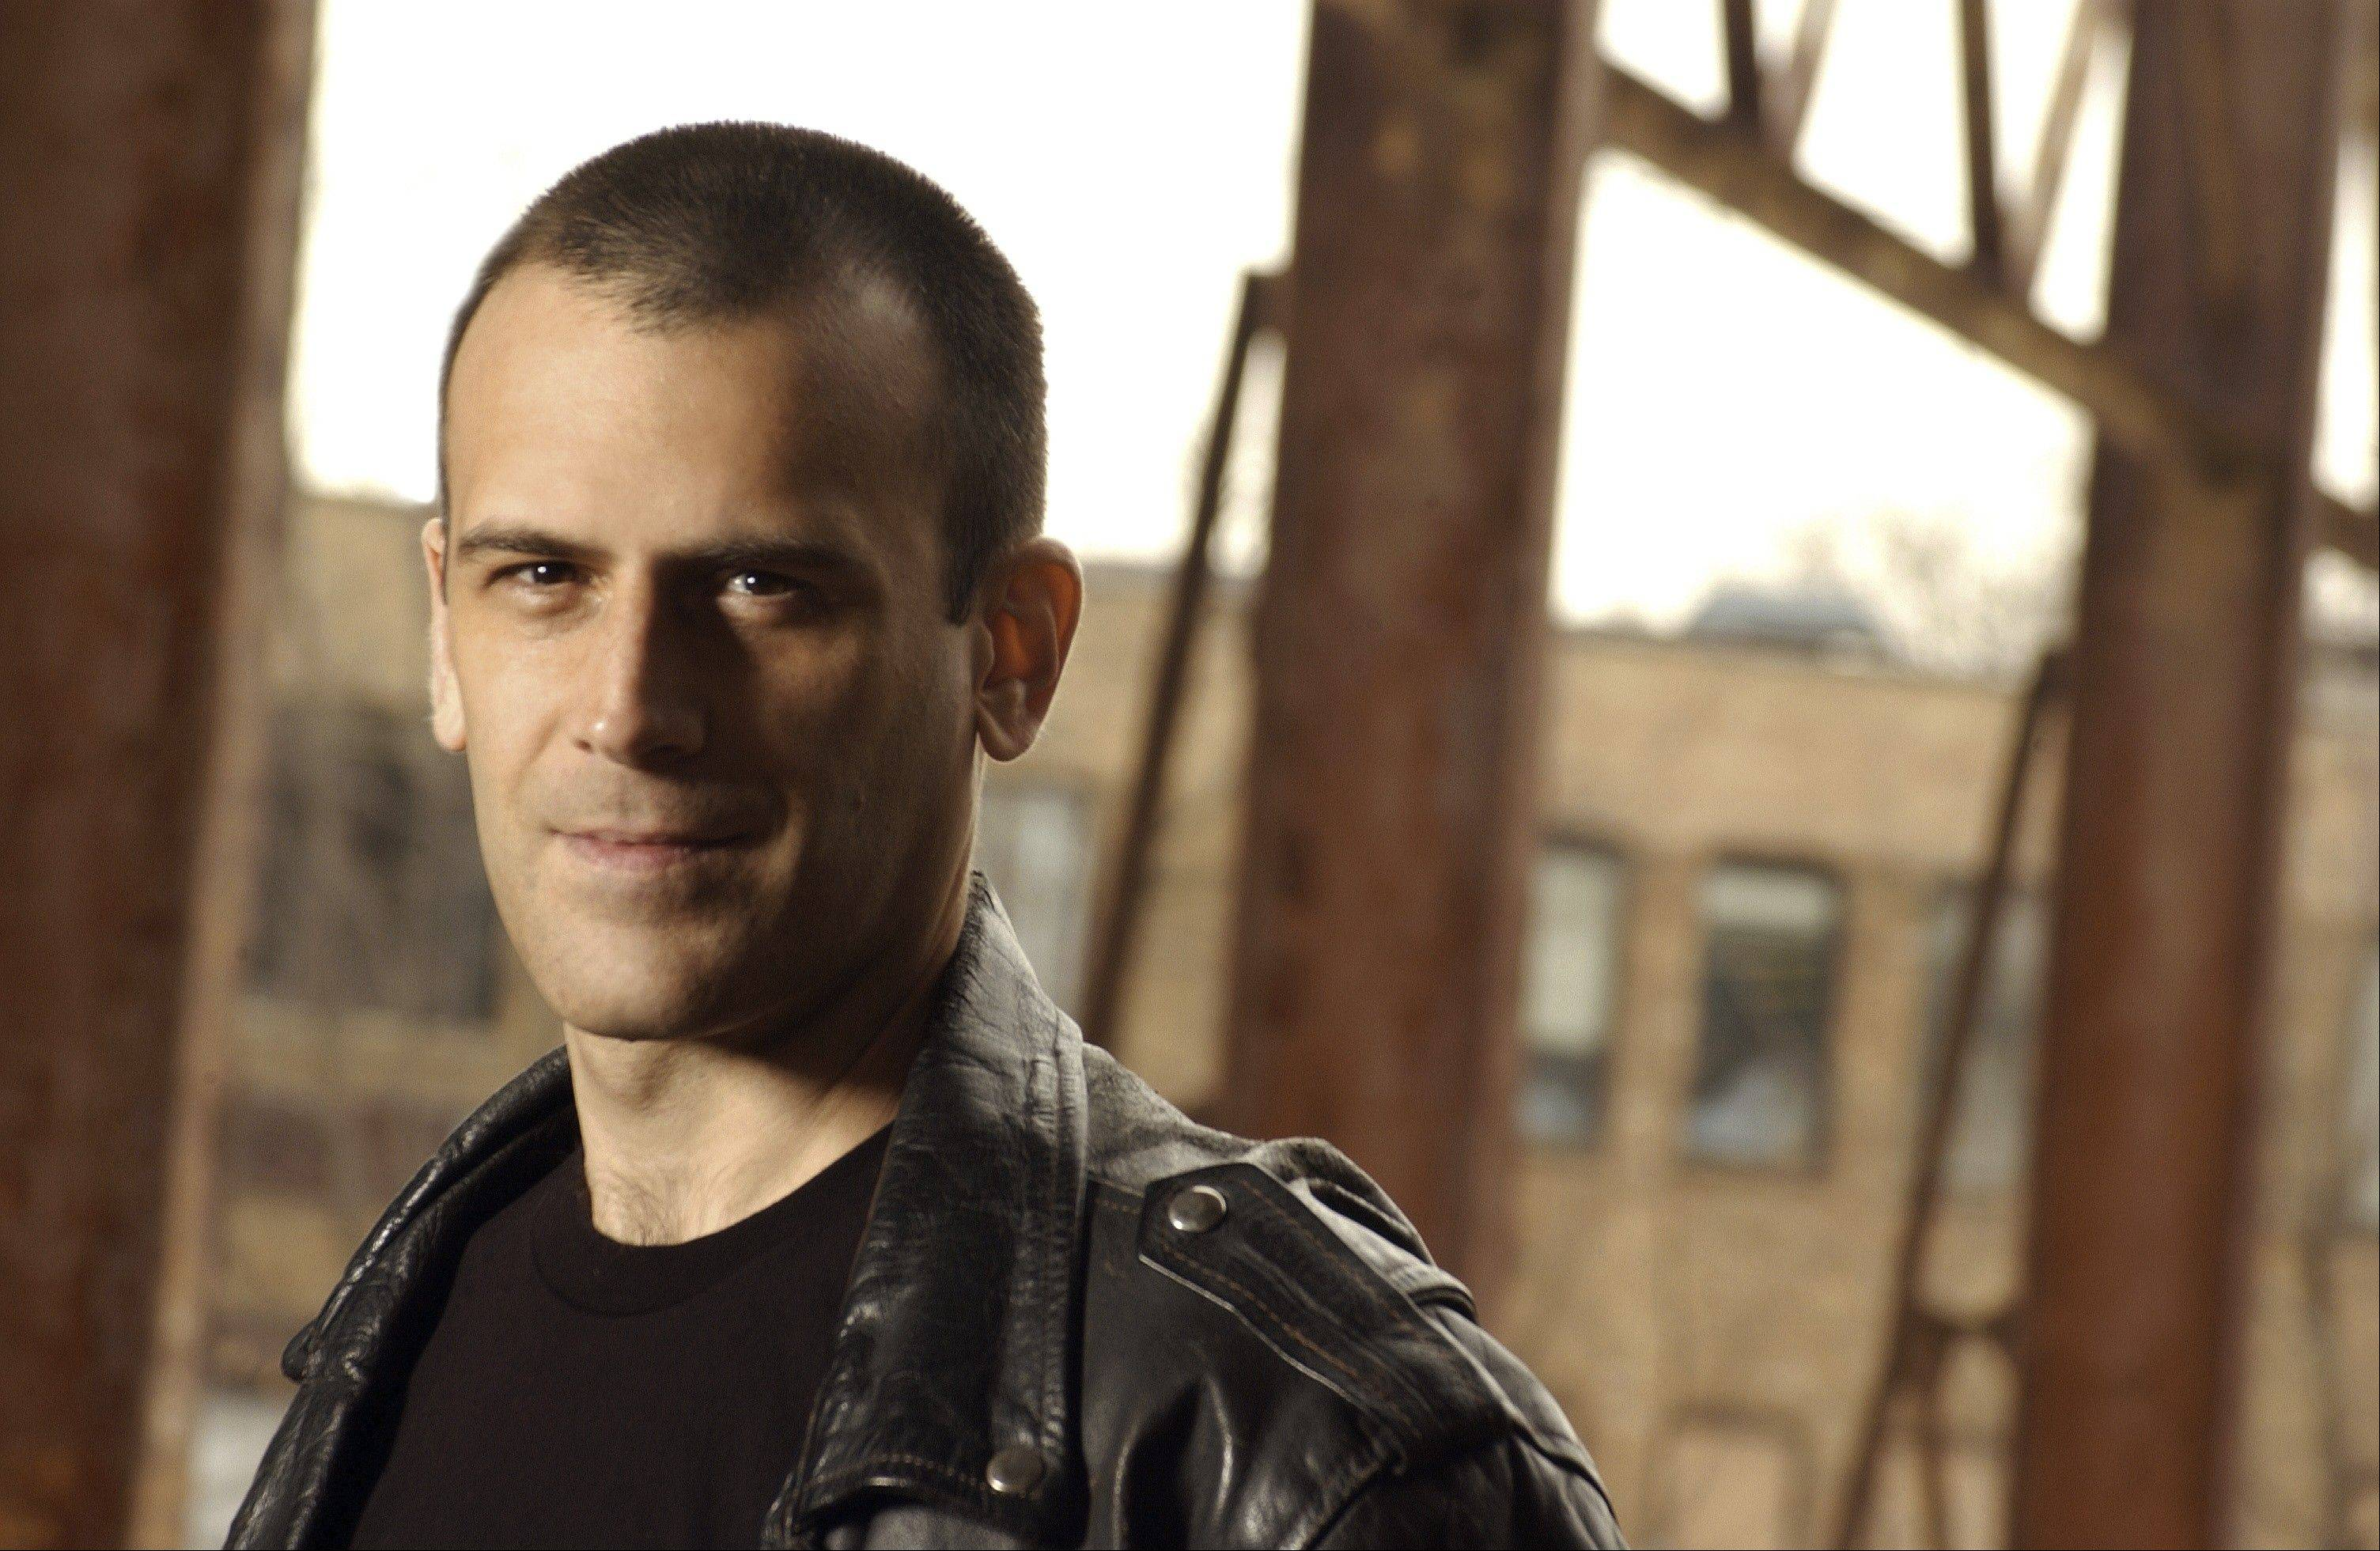 Prospect Heights� Ben Weasel and Screenching Weasel will perform at this year�s Riot Fest.